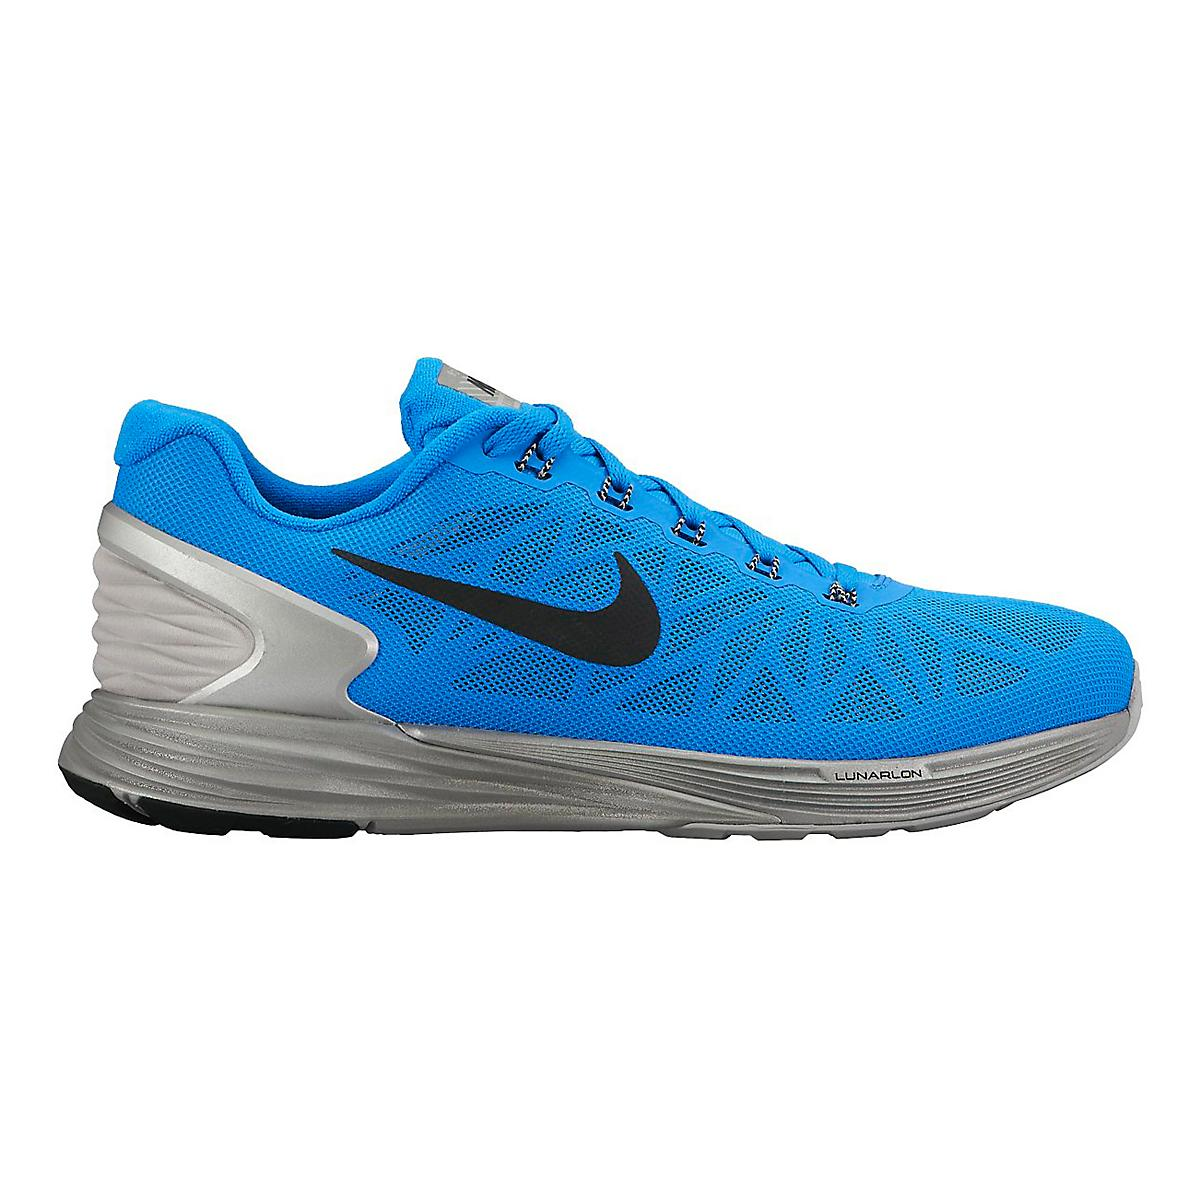 04e6d4fa06c2f ... release date mens nike lunarglide 6 flash running shoe at road runner  sports 9804e d1e82 free shipping nike lunarglide 5 womens marathon womens  ...